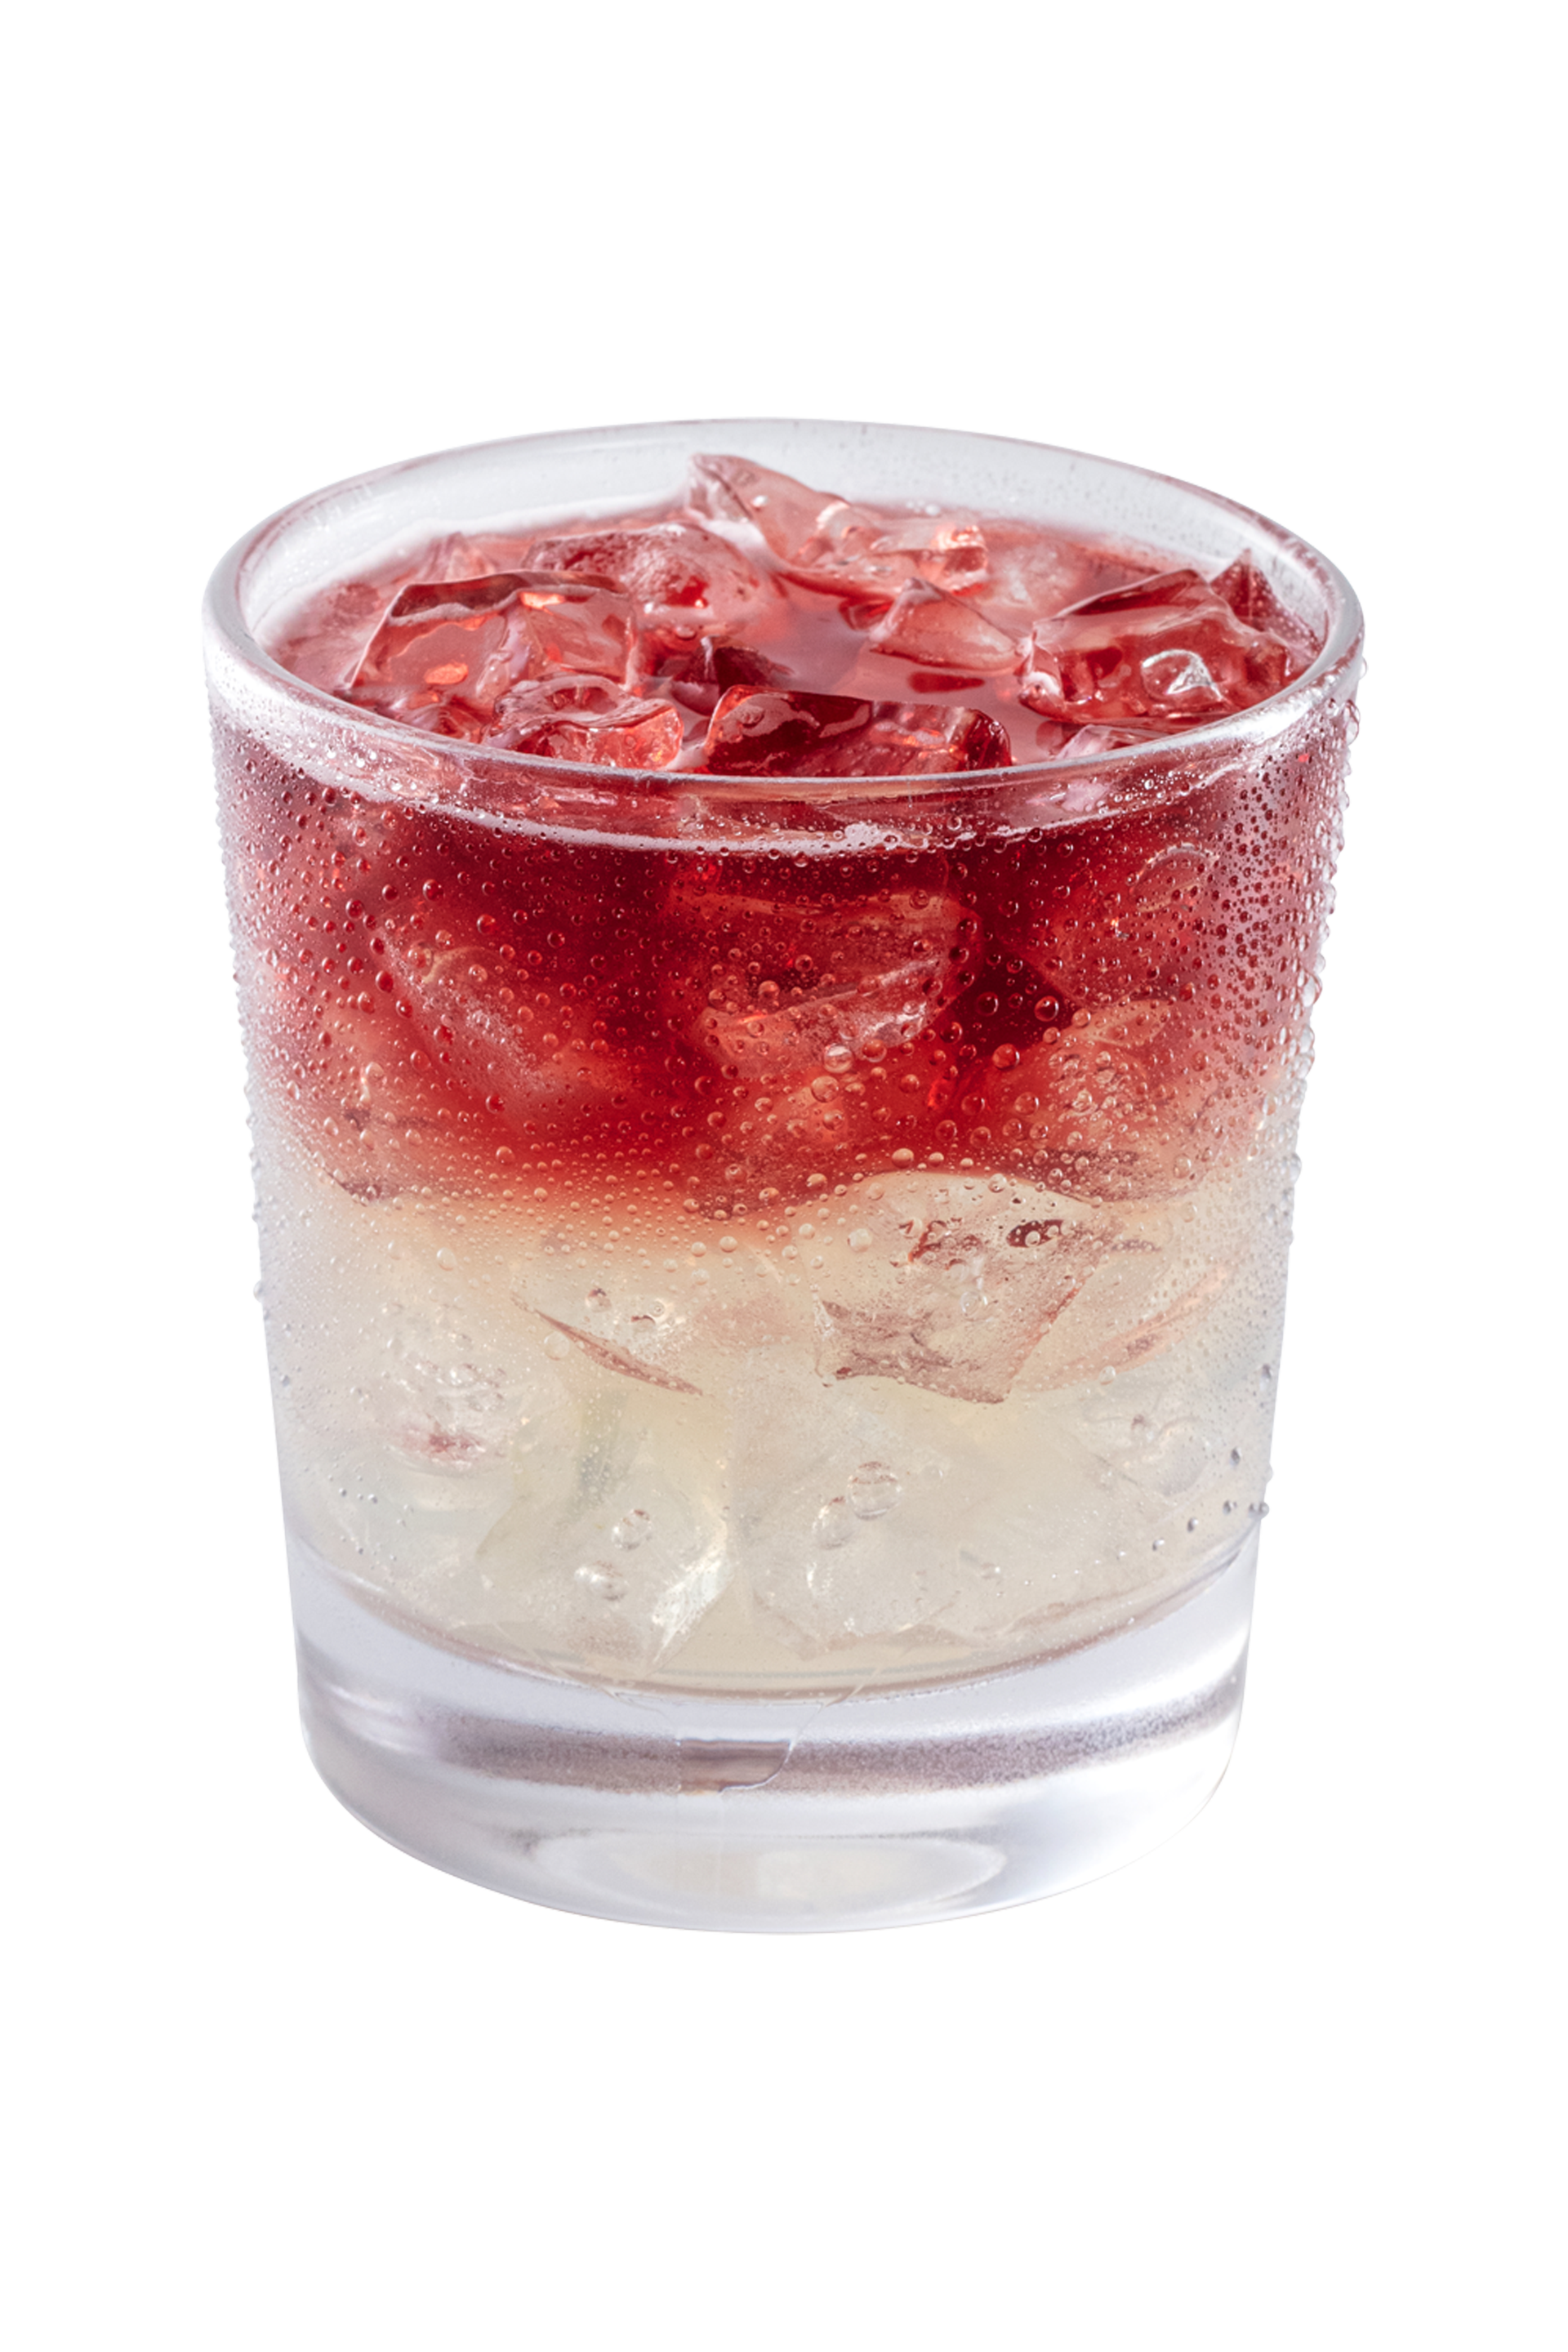 cocktail-image